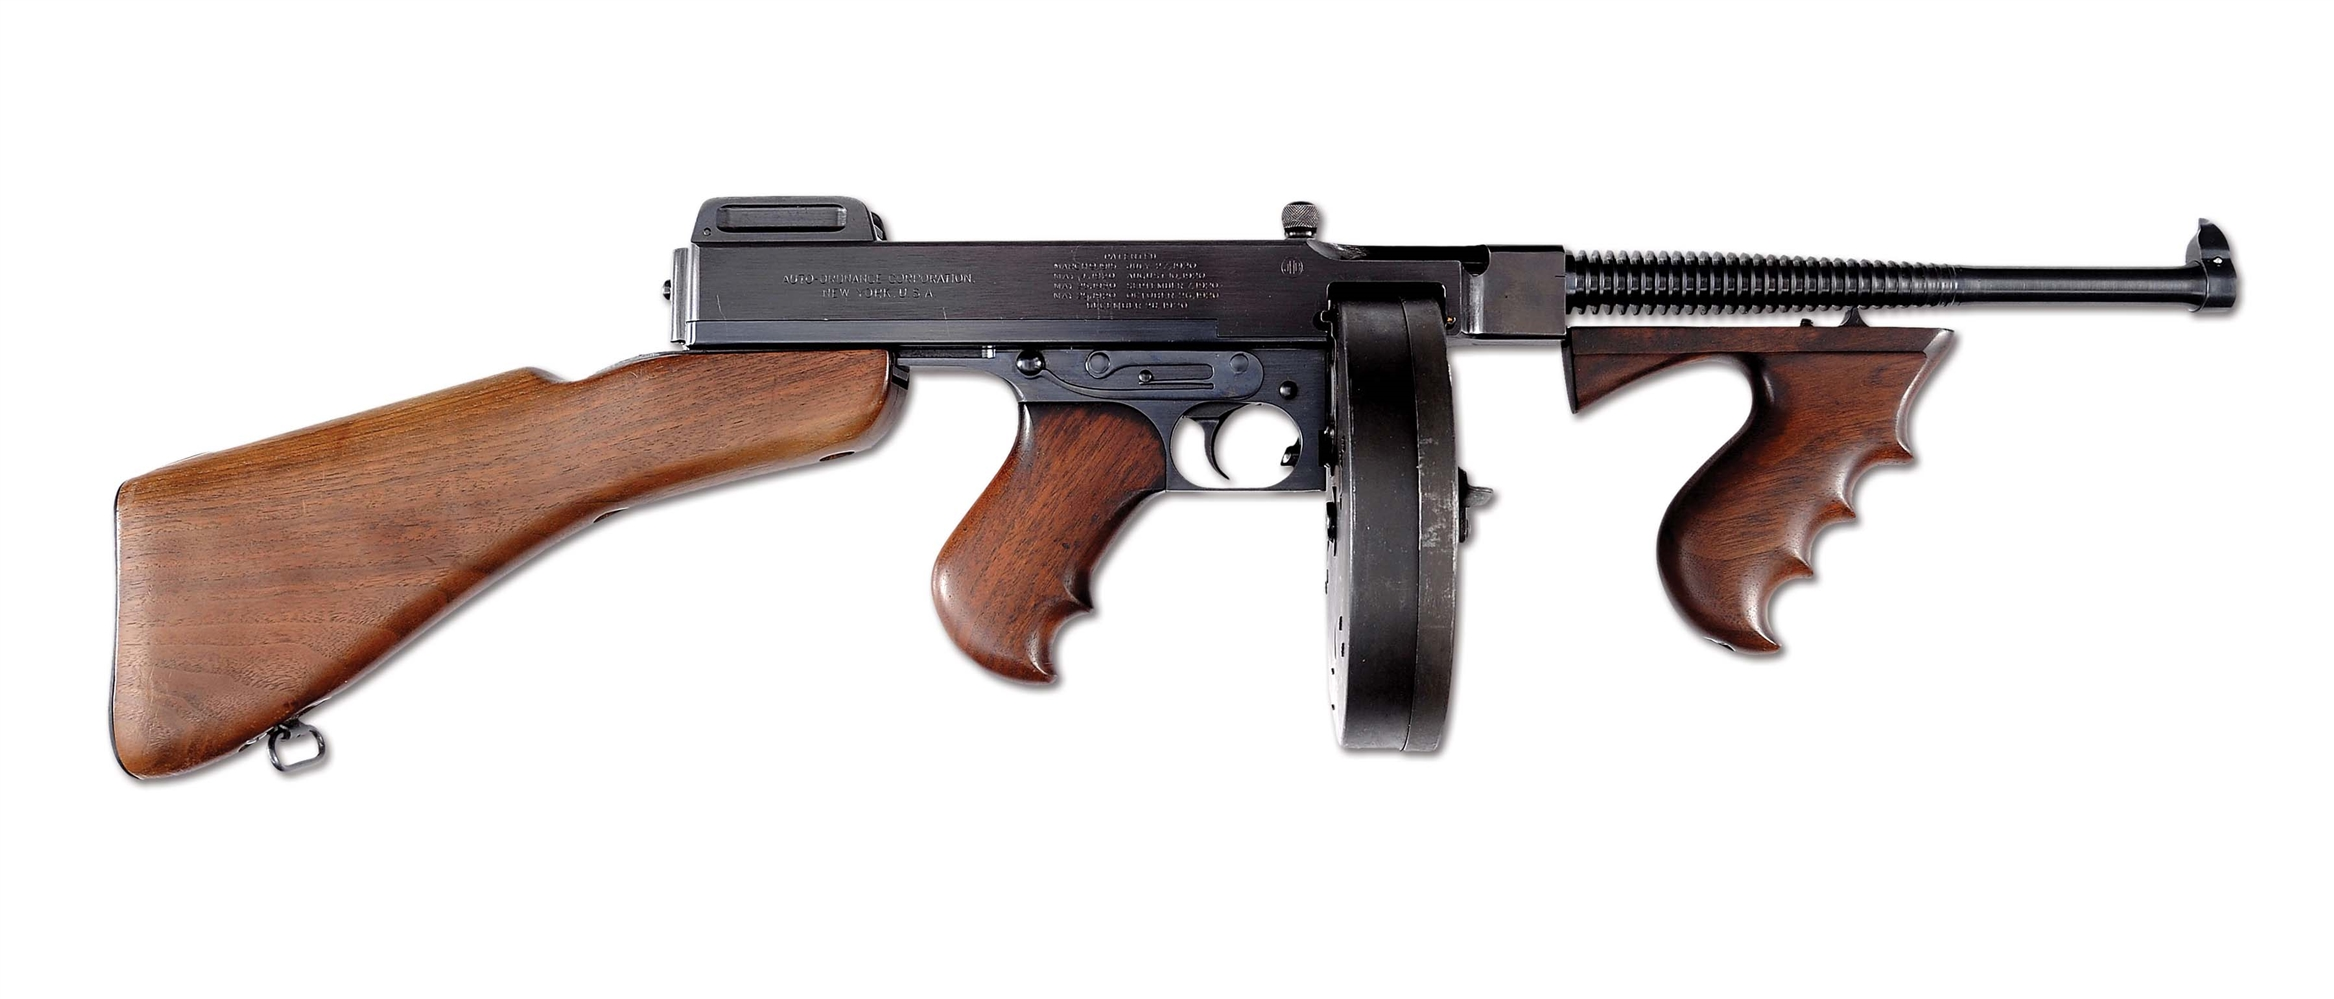 (N) Extremely Low Number Colt 1921A Thompson Machine Gun with Extra Accessories (Curio & Relic).